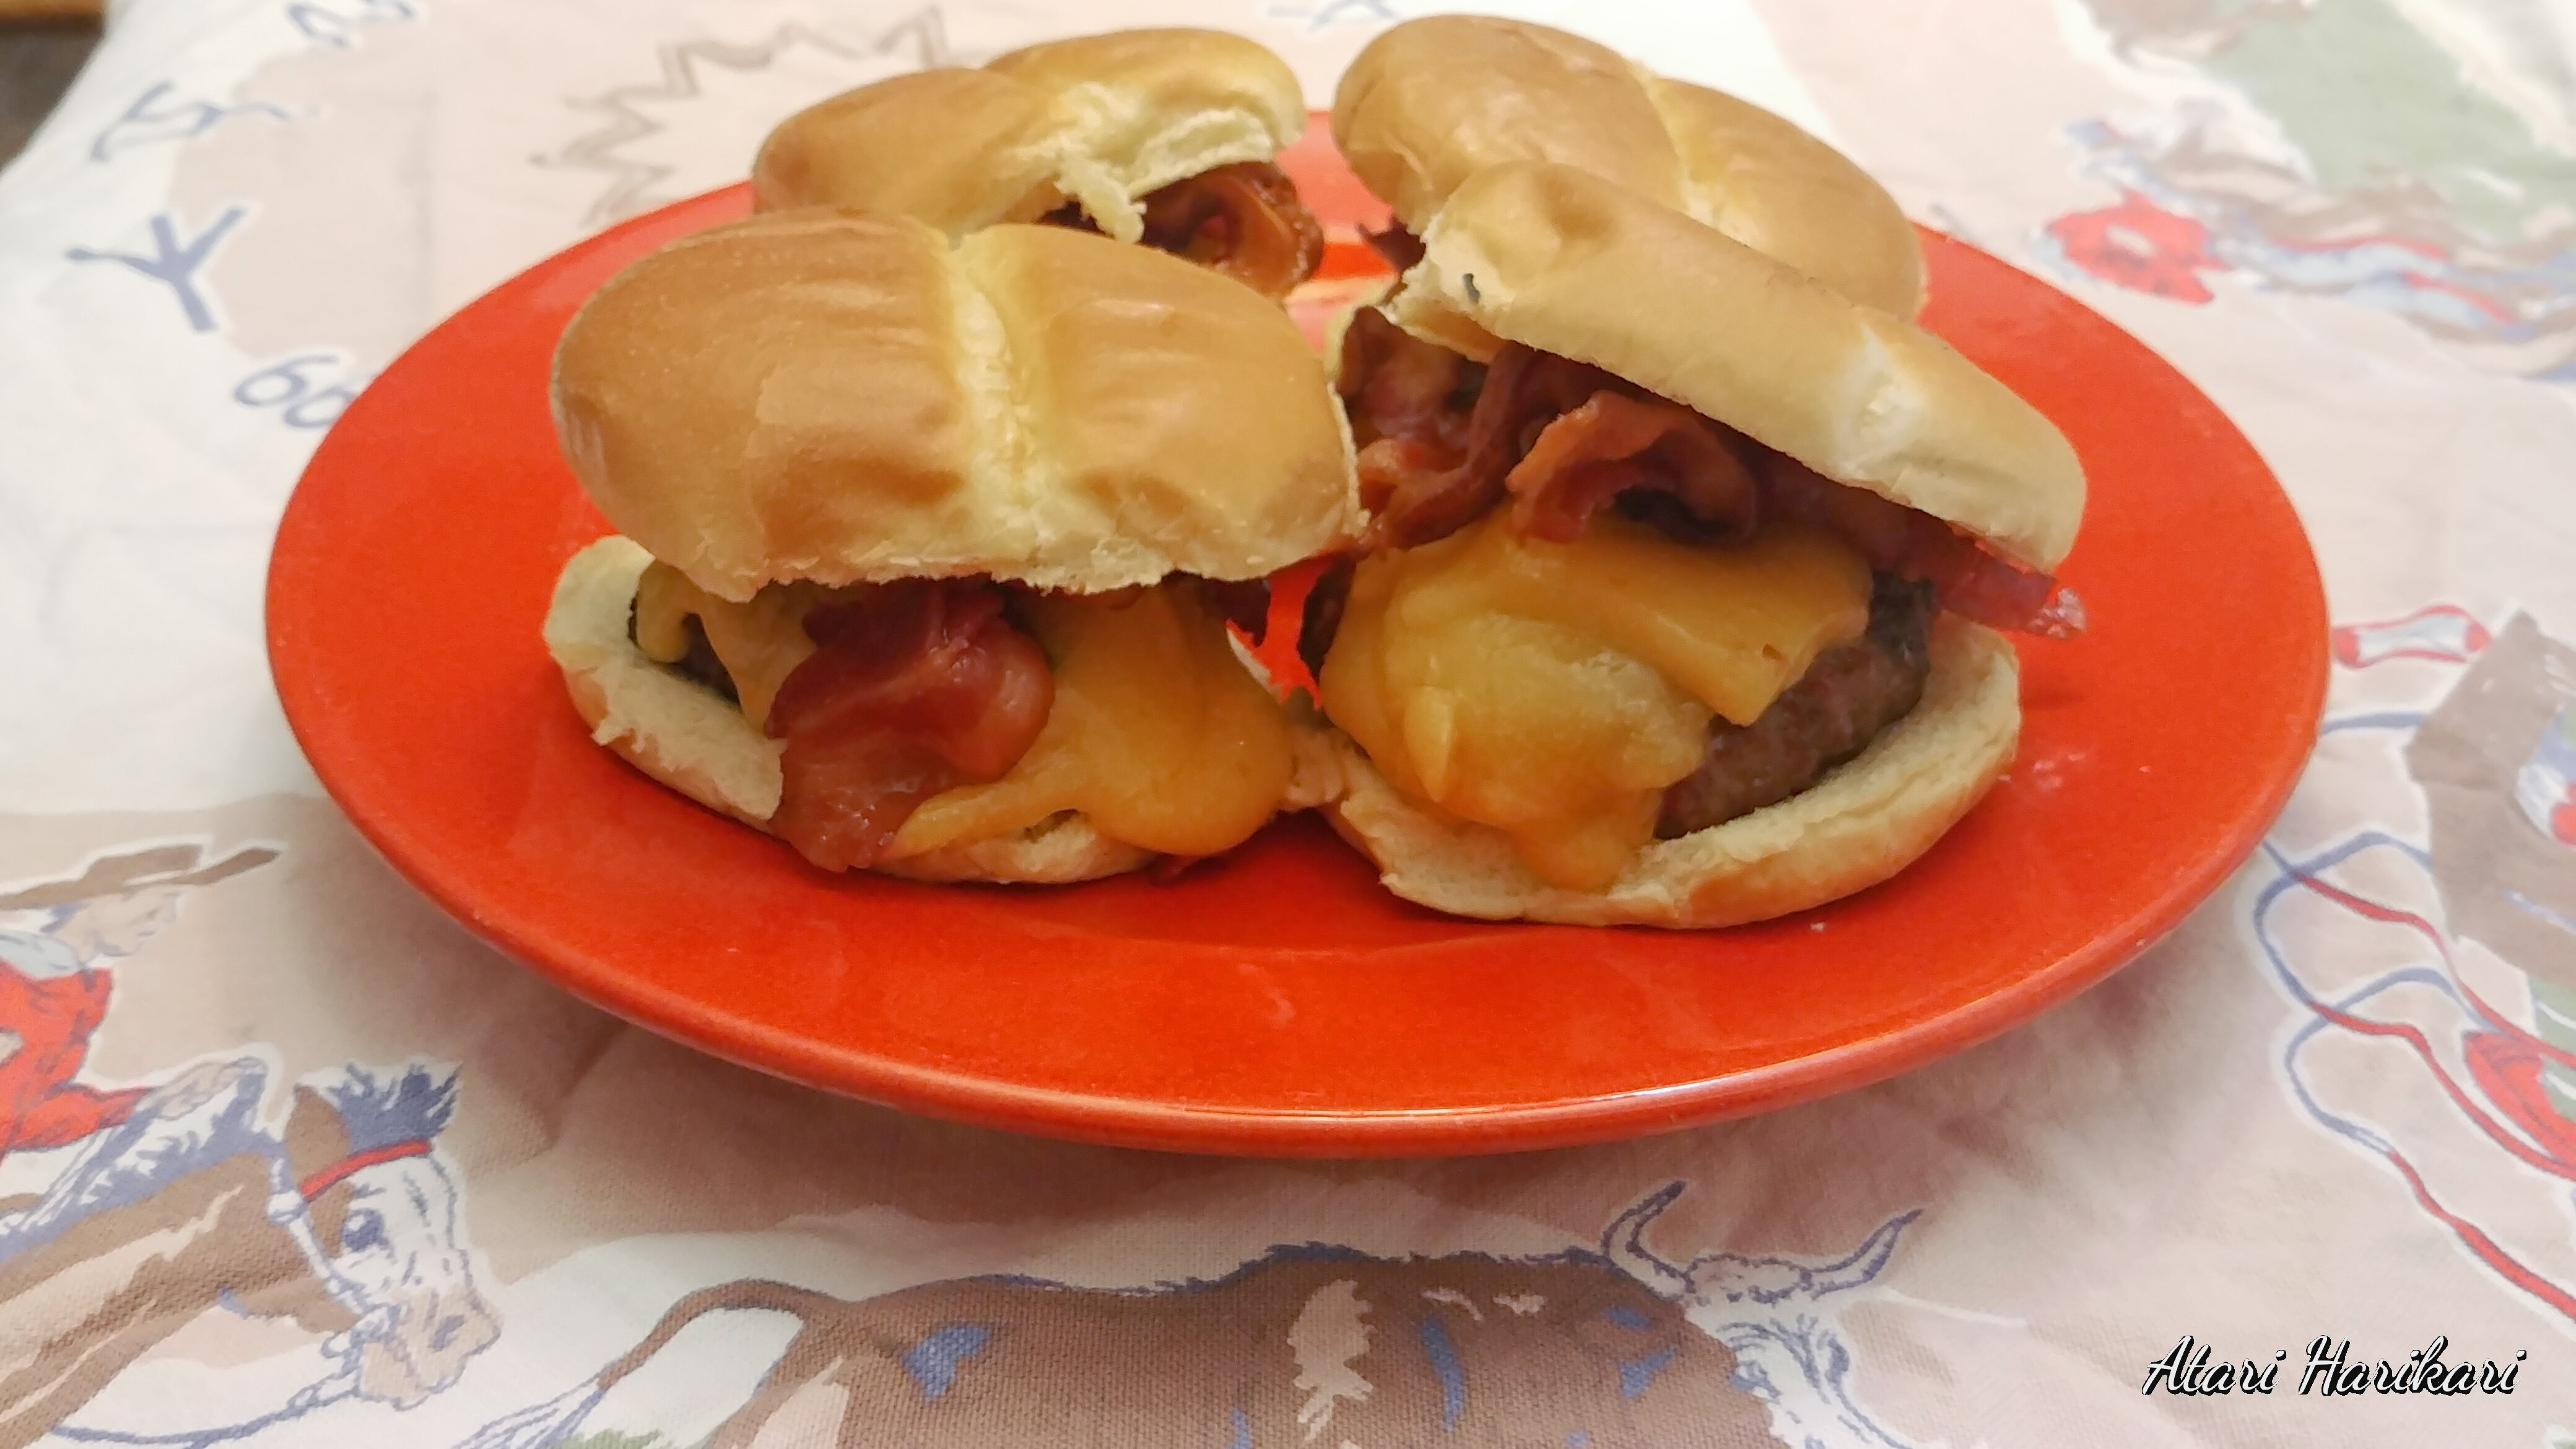 grilled bison cheeseburgers with bacon